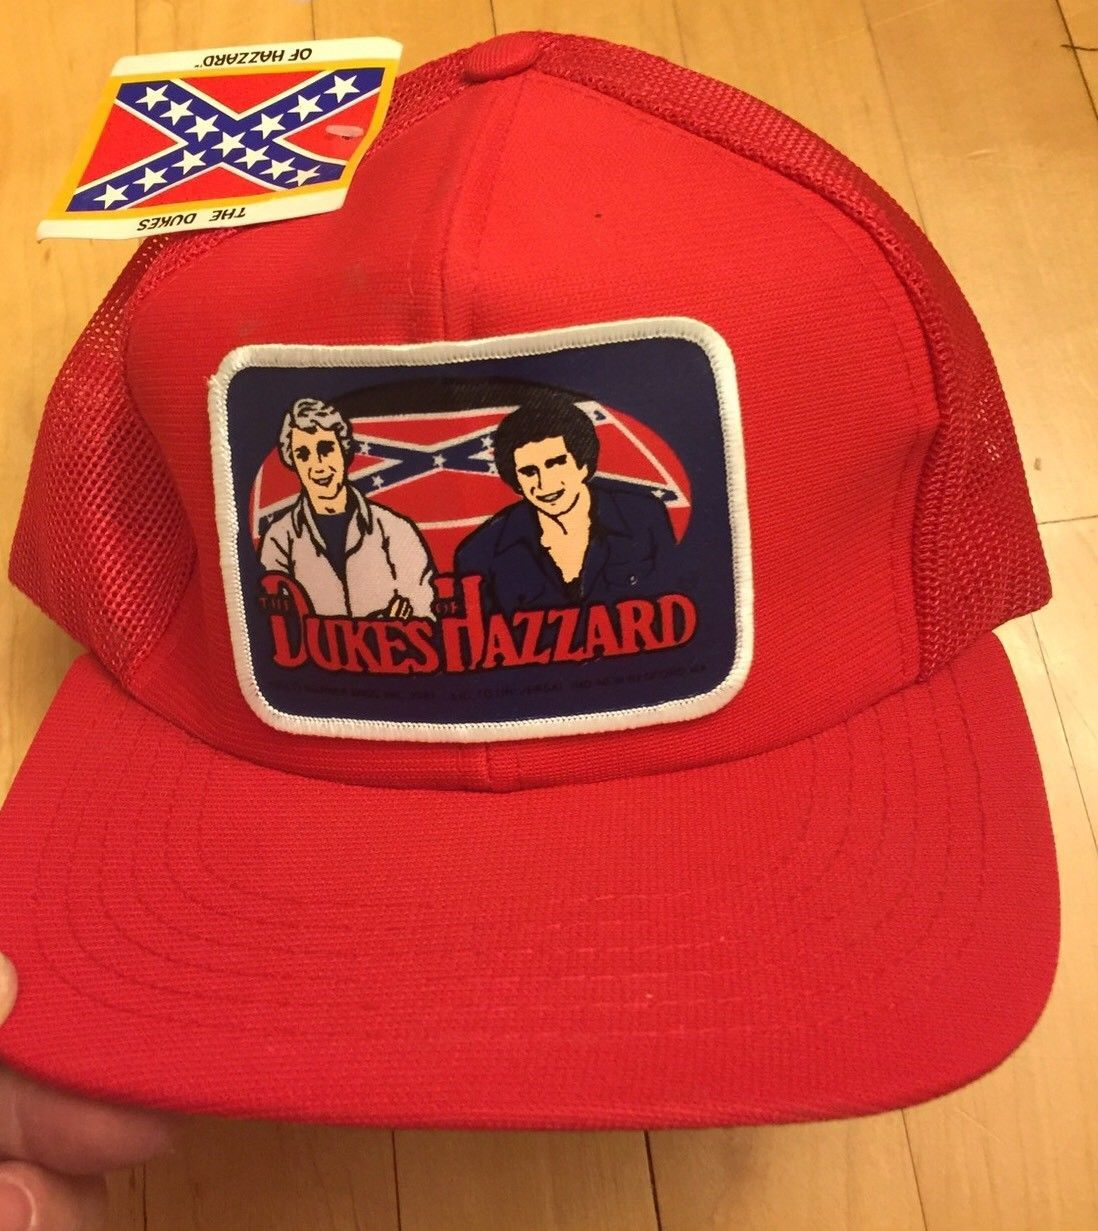 New vintage 1981 dukes of hazzard red hat usa made rare  076ffa0b7a8